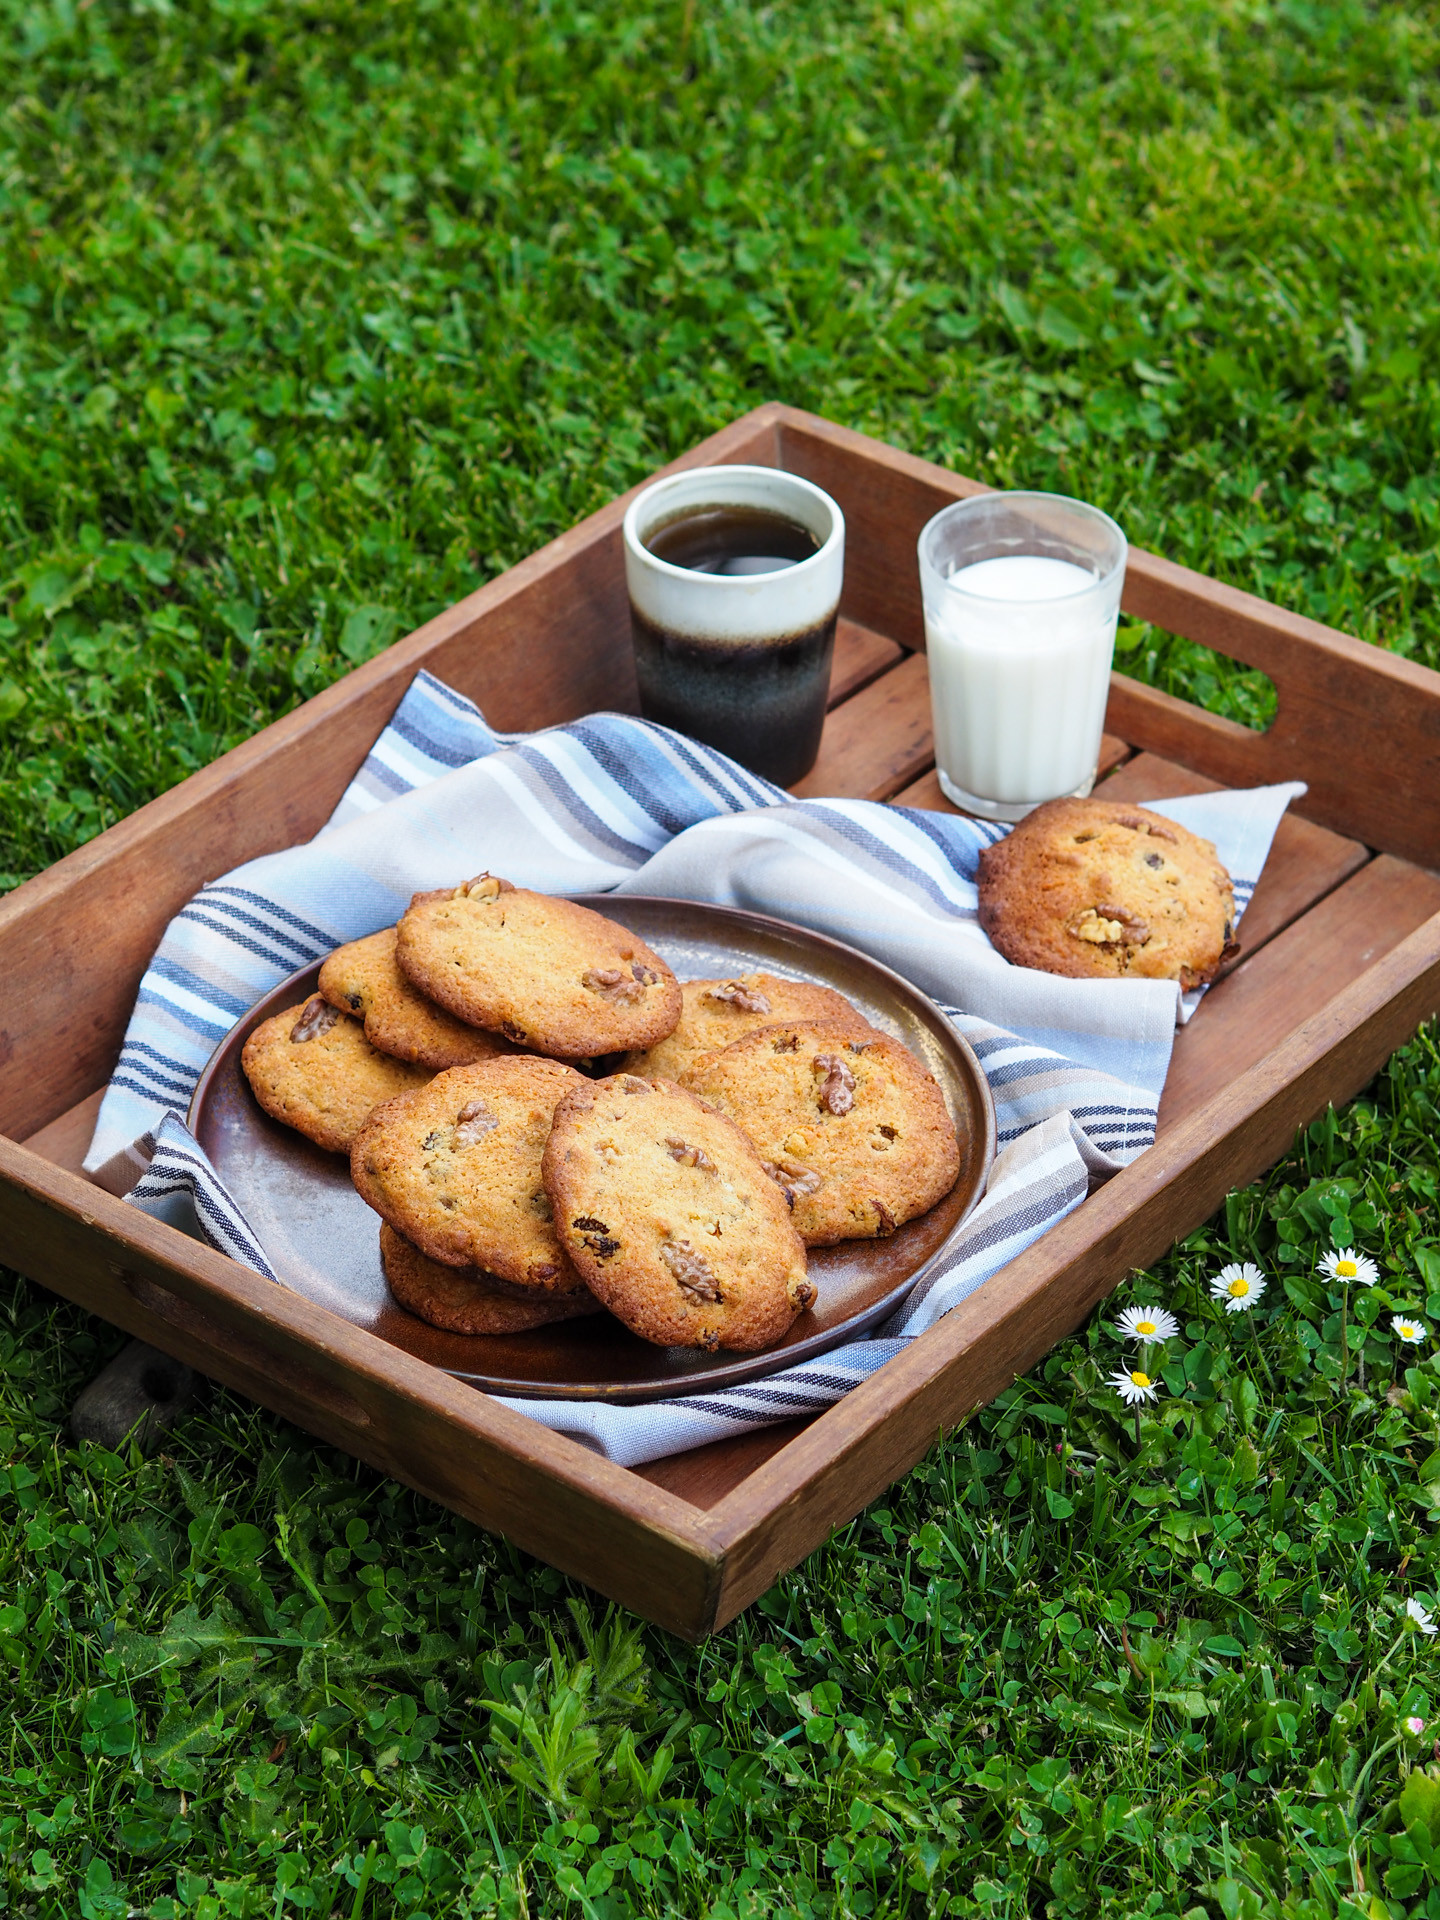 Goûter dans l'herbe avec 的 cookies flocons d'avoine, raisins secs 和 noix